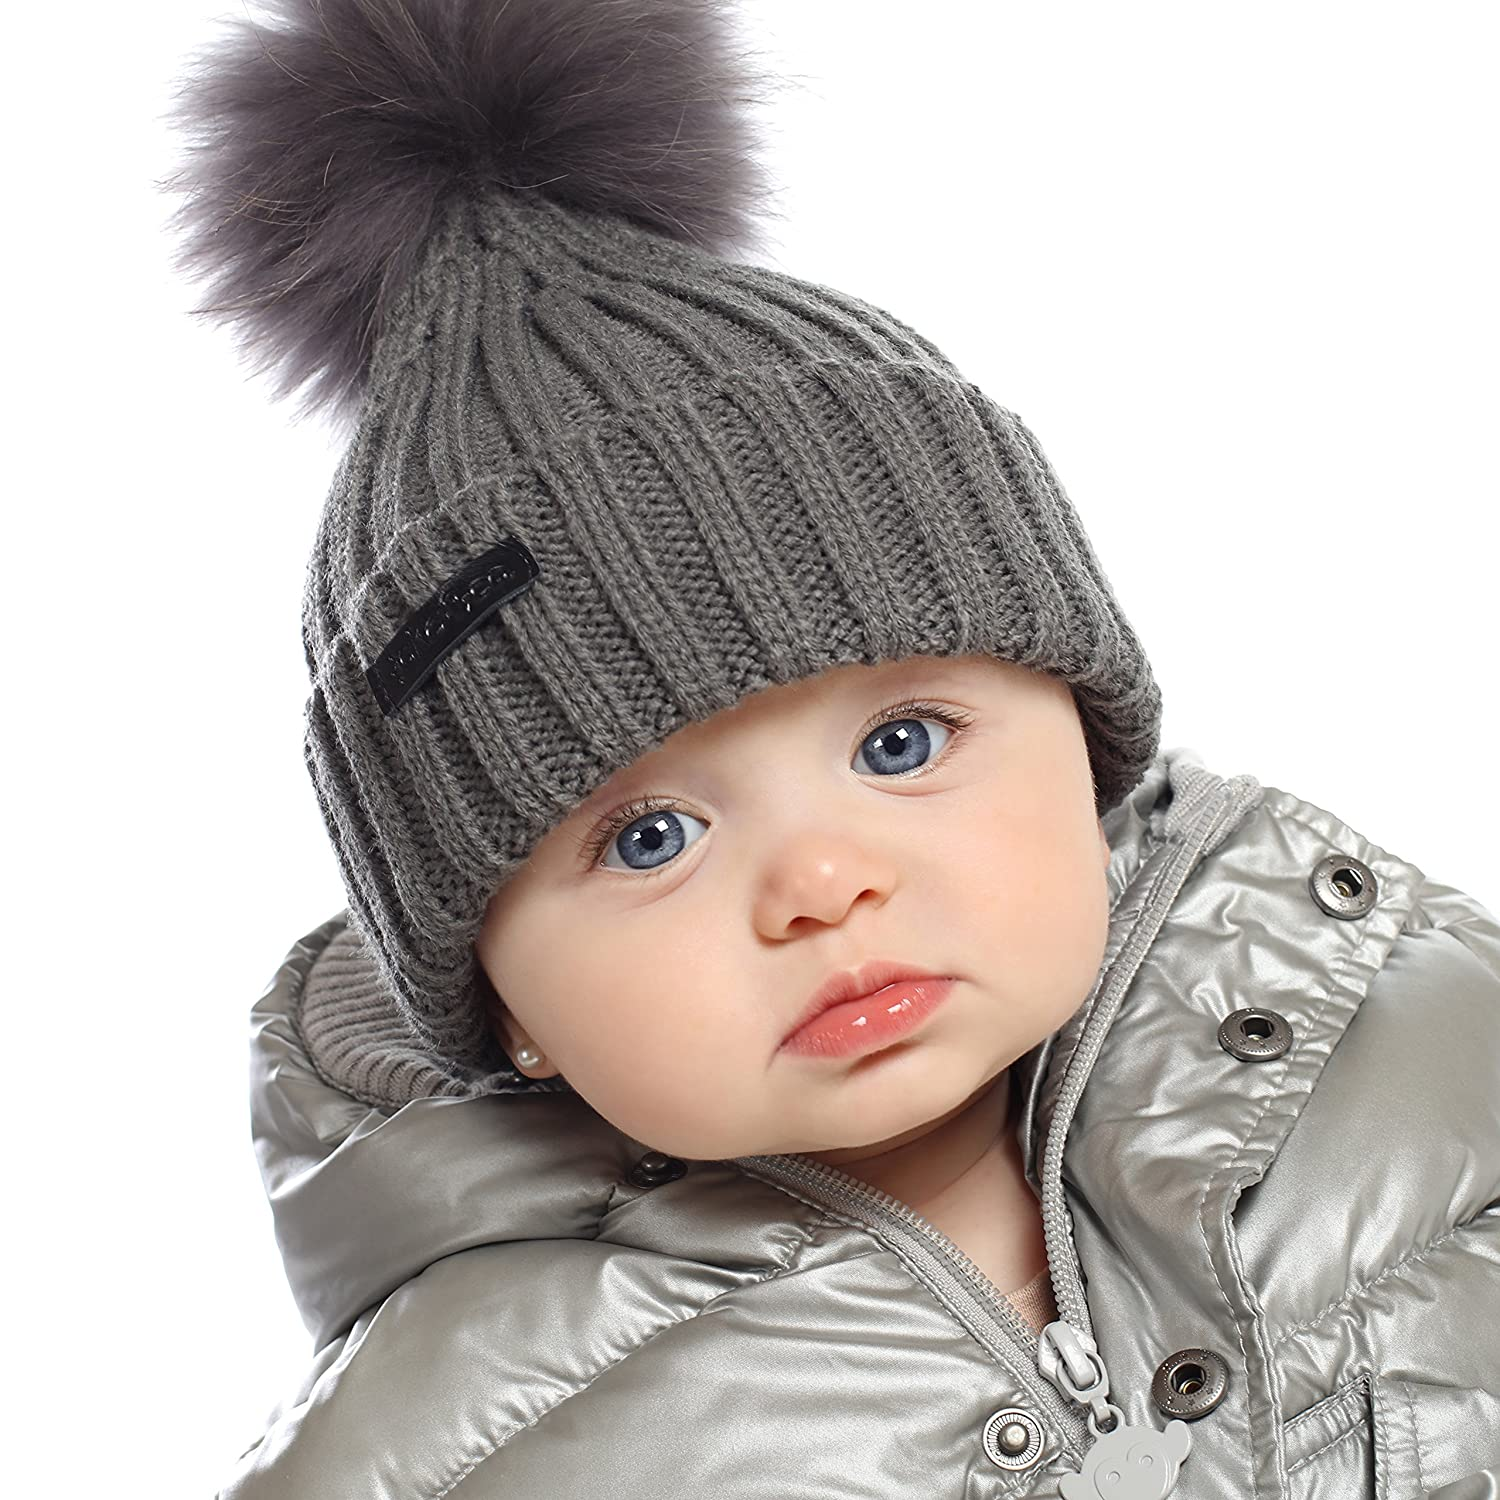 Excellent Amazon.com: AKA&Co. Baby Boys Girls Toddler Grey Winter Knit  TX11